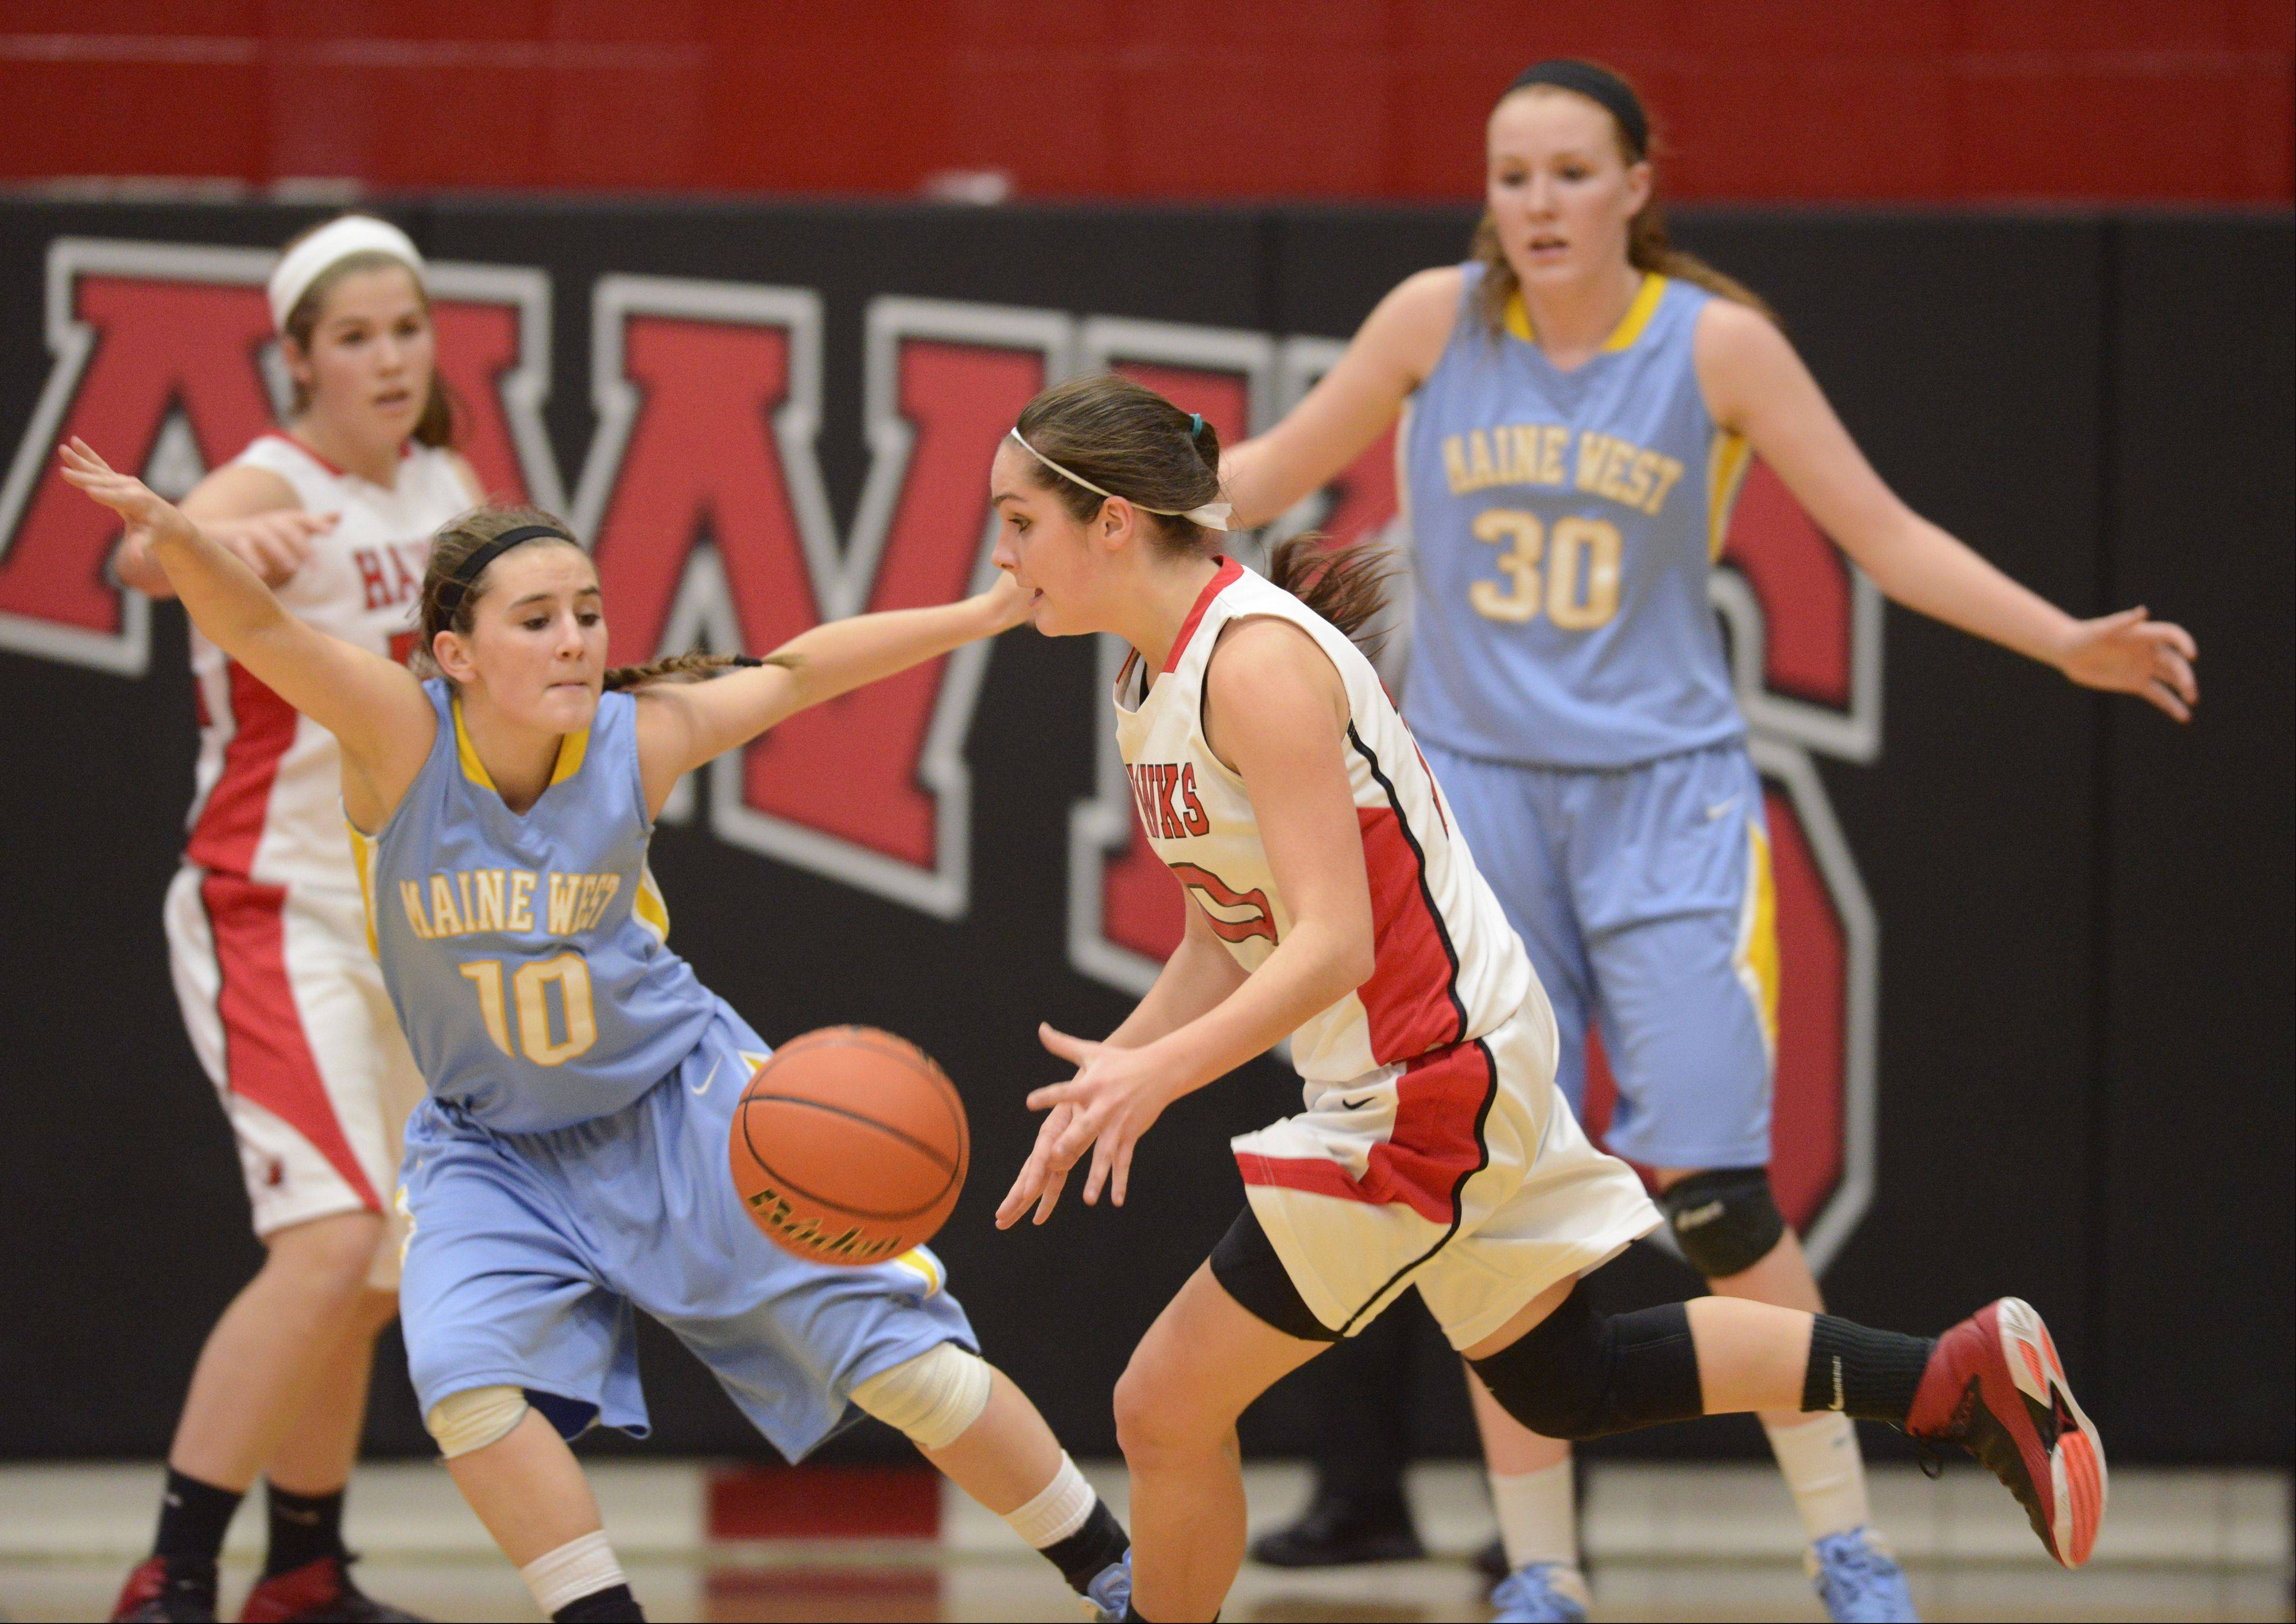 Photos from the Maine West vs. Maine South girls basketball game on Tuesday, December 17th, in Park Ridge